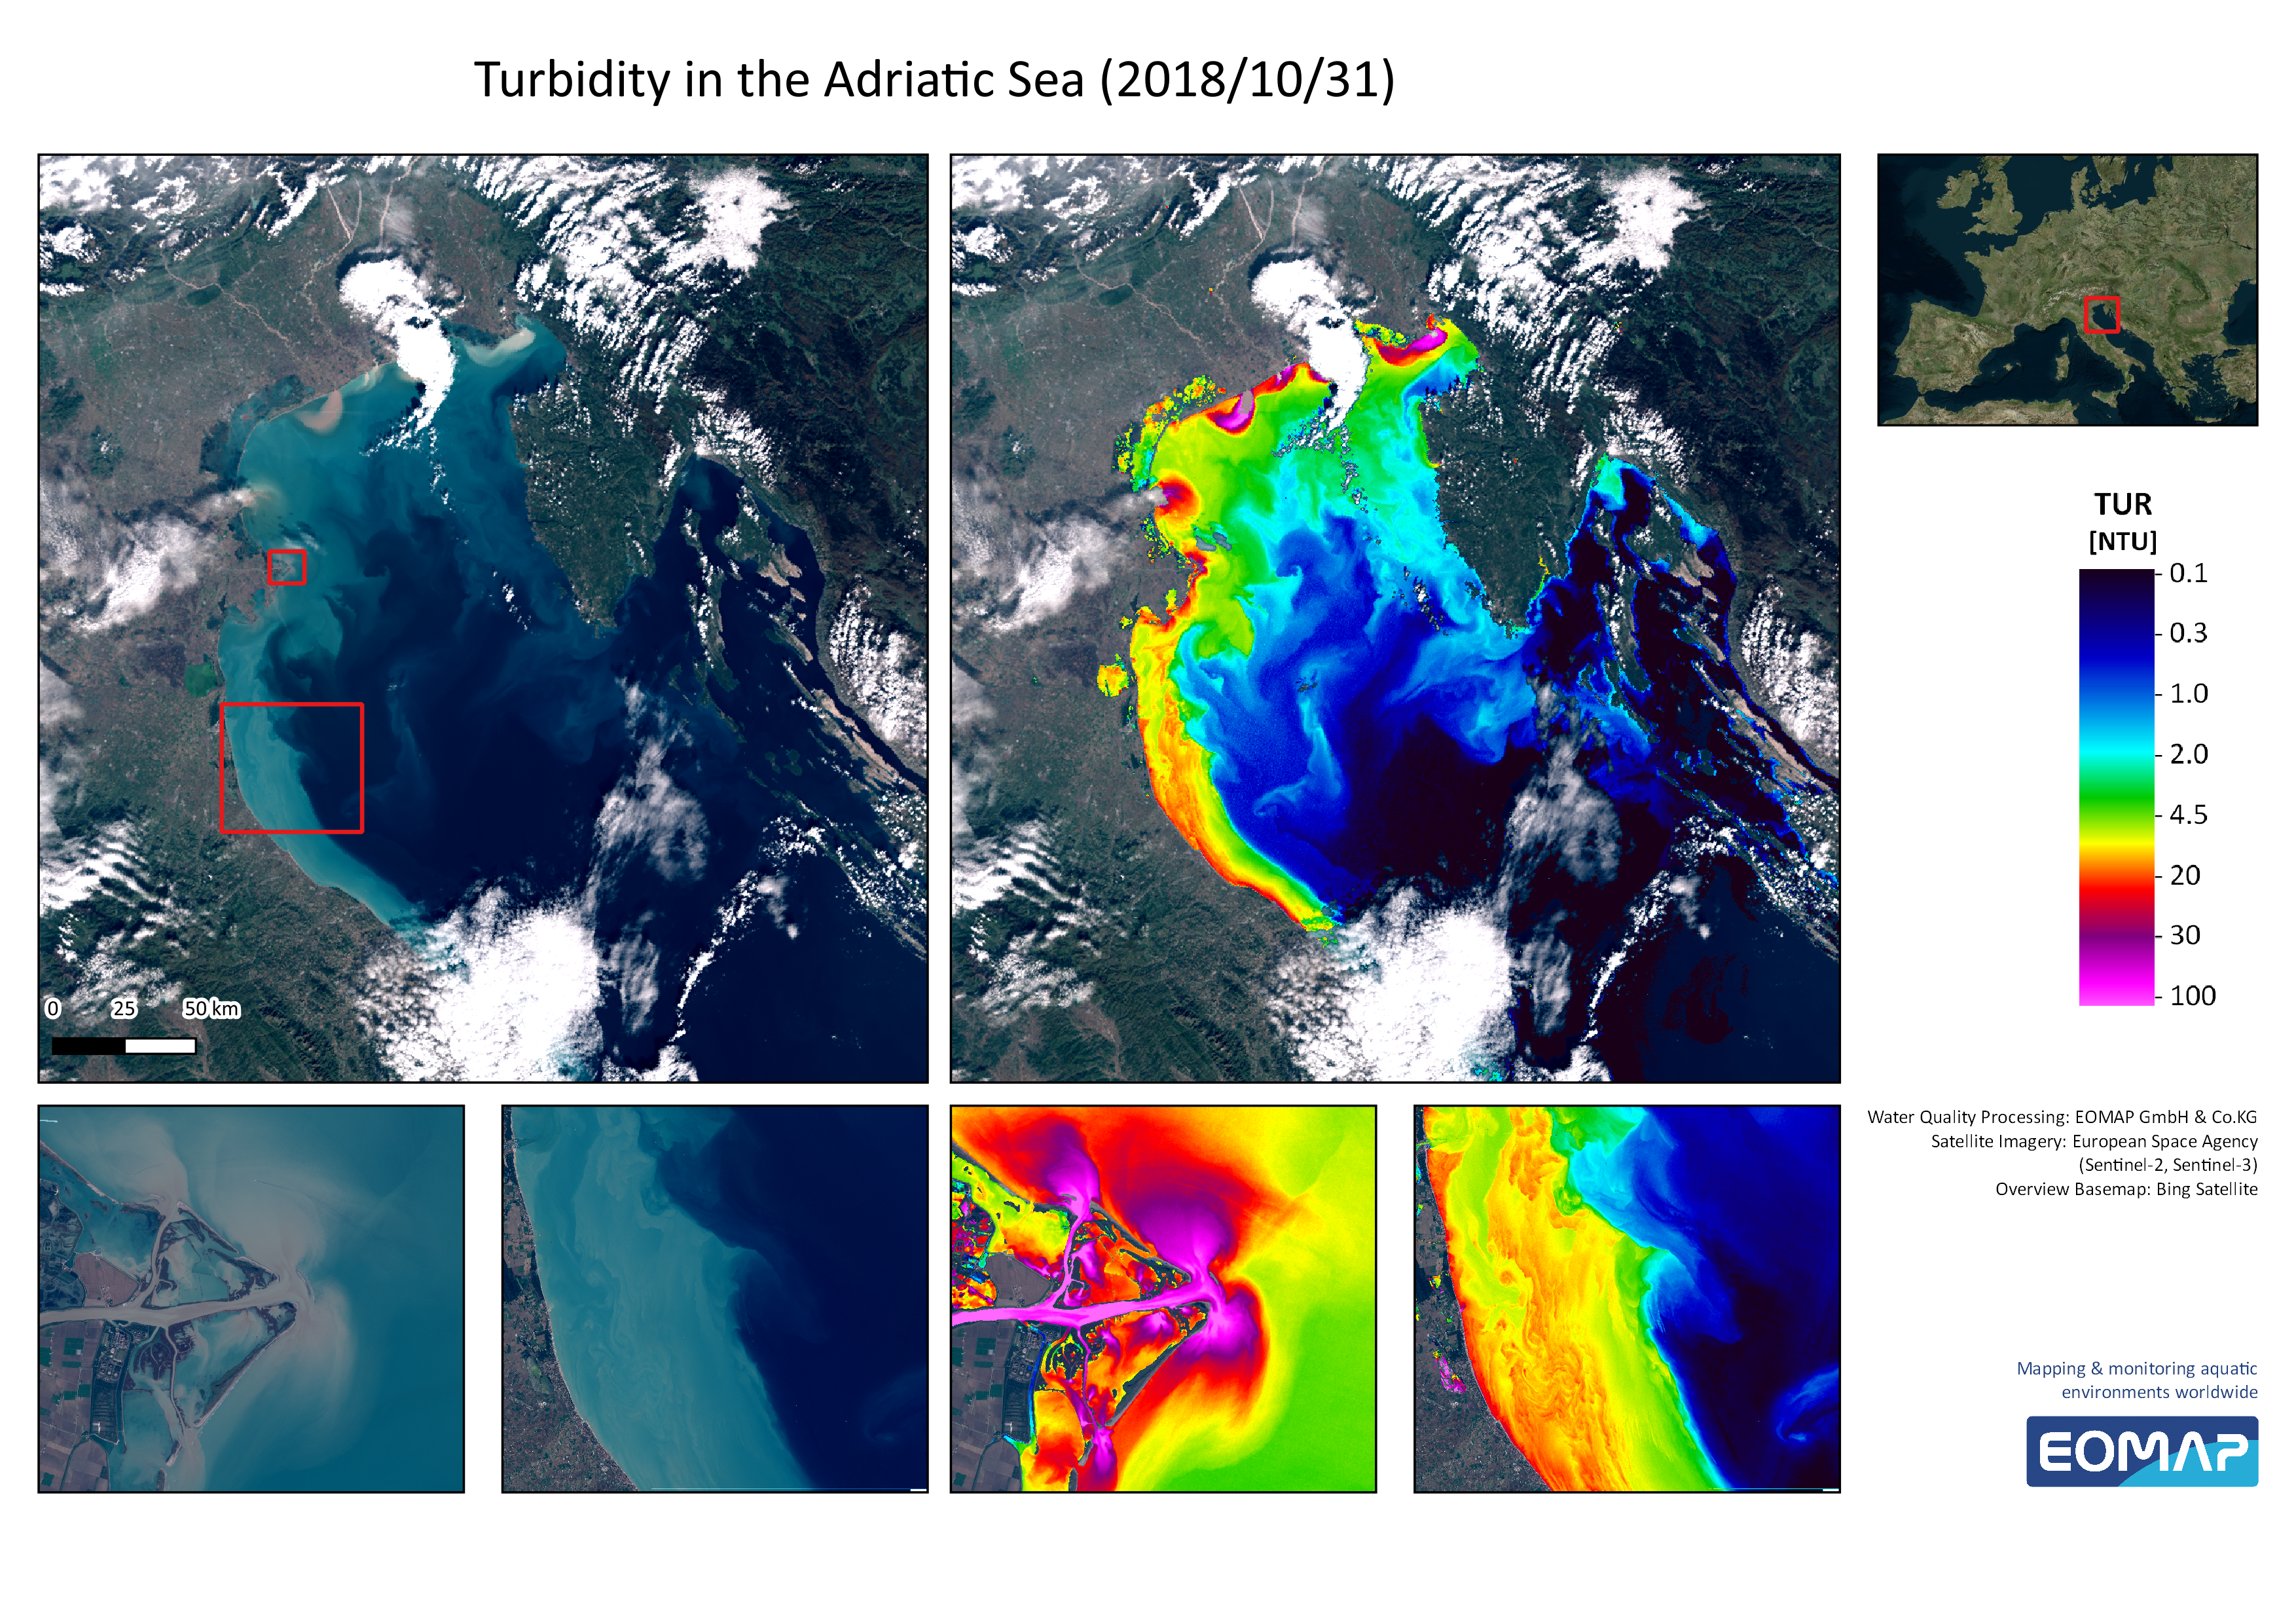 Using Satellite Data for Flood Monitoring - Earth ... on satellite map, satellite finder, satellite view, satellite weather, system mapping, aerial mapping, satellite phones, satellite descrambler, data mapping, service mapping, satellite dish, satellite image, terrain mapping, computer mapping, satellite imaging, laser mapping, satellite isp, map mapping, satellite pictures, satellite dsl, power mapping, satellite receiver, wifi mapping, satellite internet service, standard mapping, satellite broadband, sun mapping,